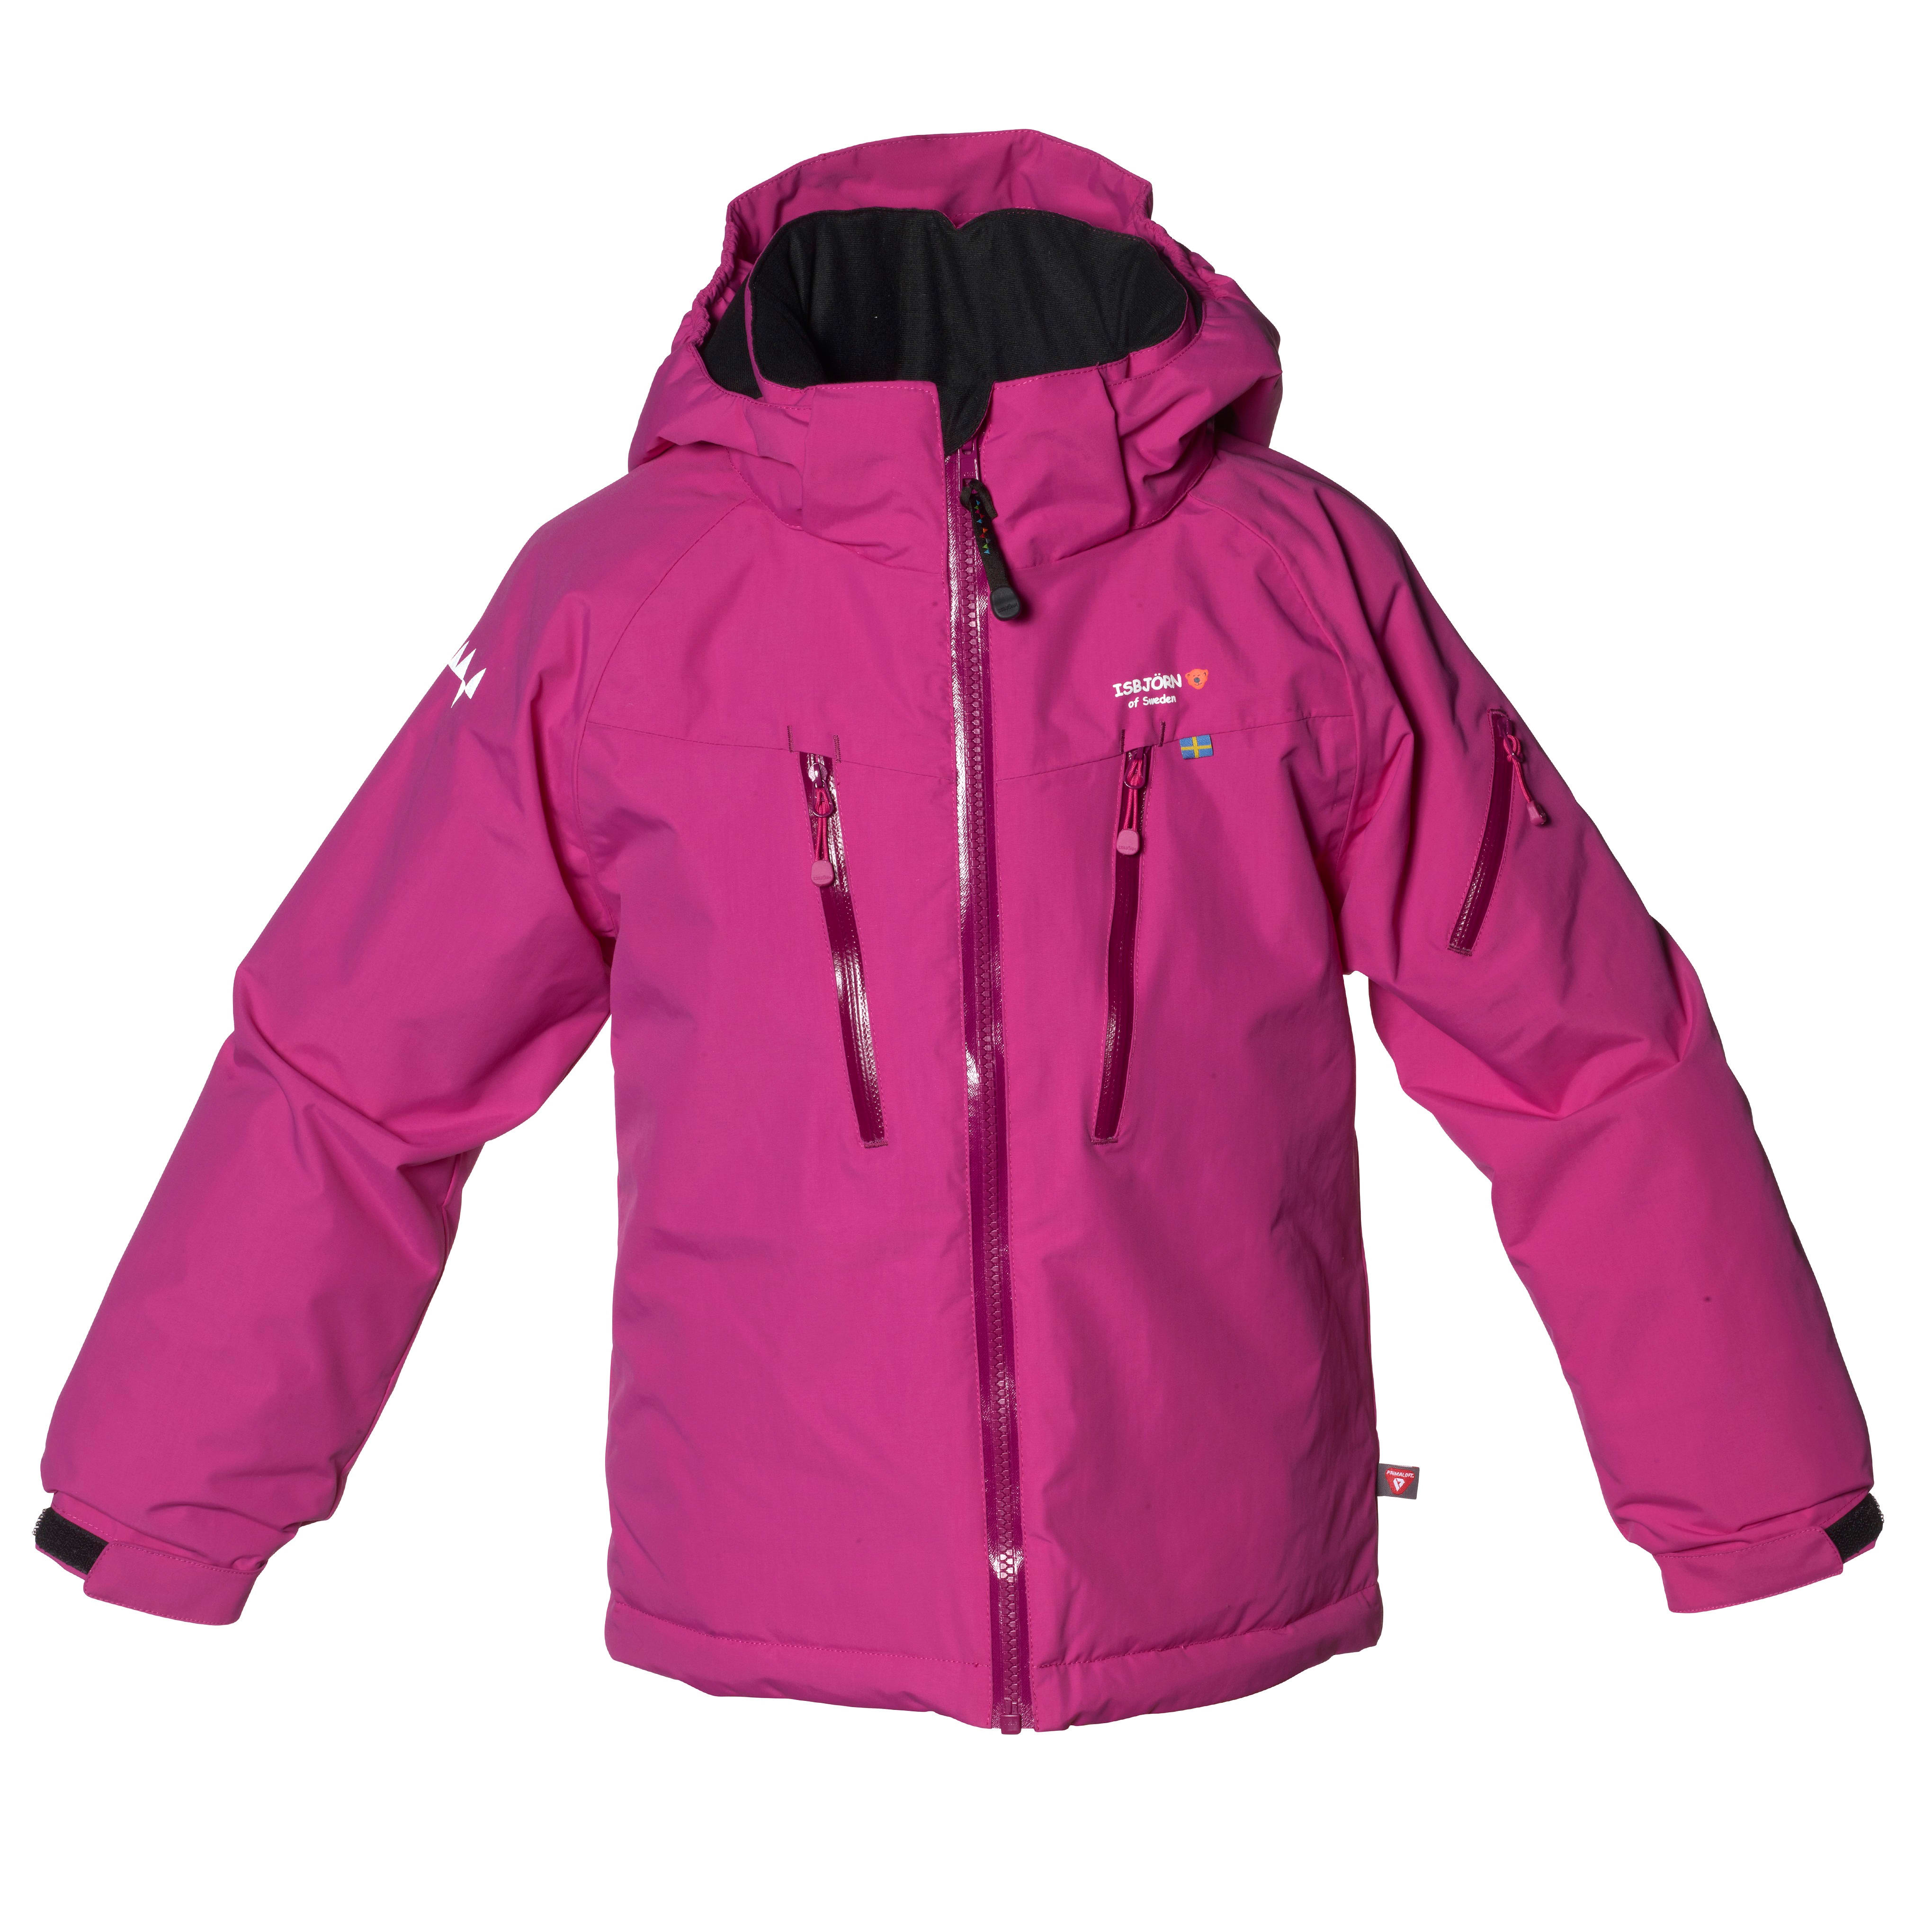 Buy Isbjörn of Sweden Helicopter Winter Jacket from Outnorth b6db449c8fdf4